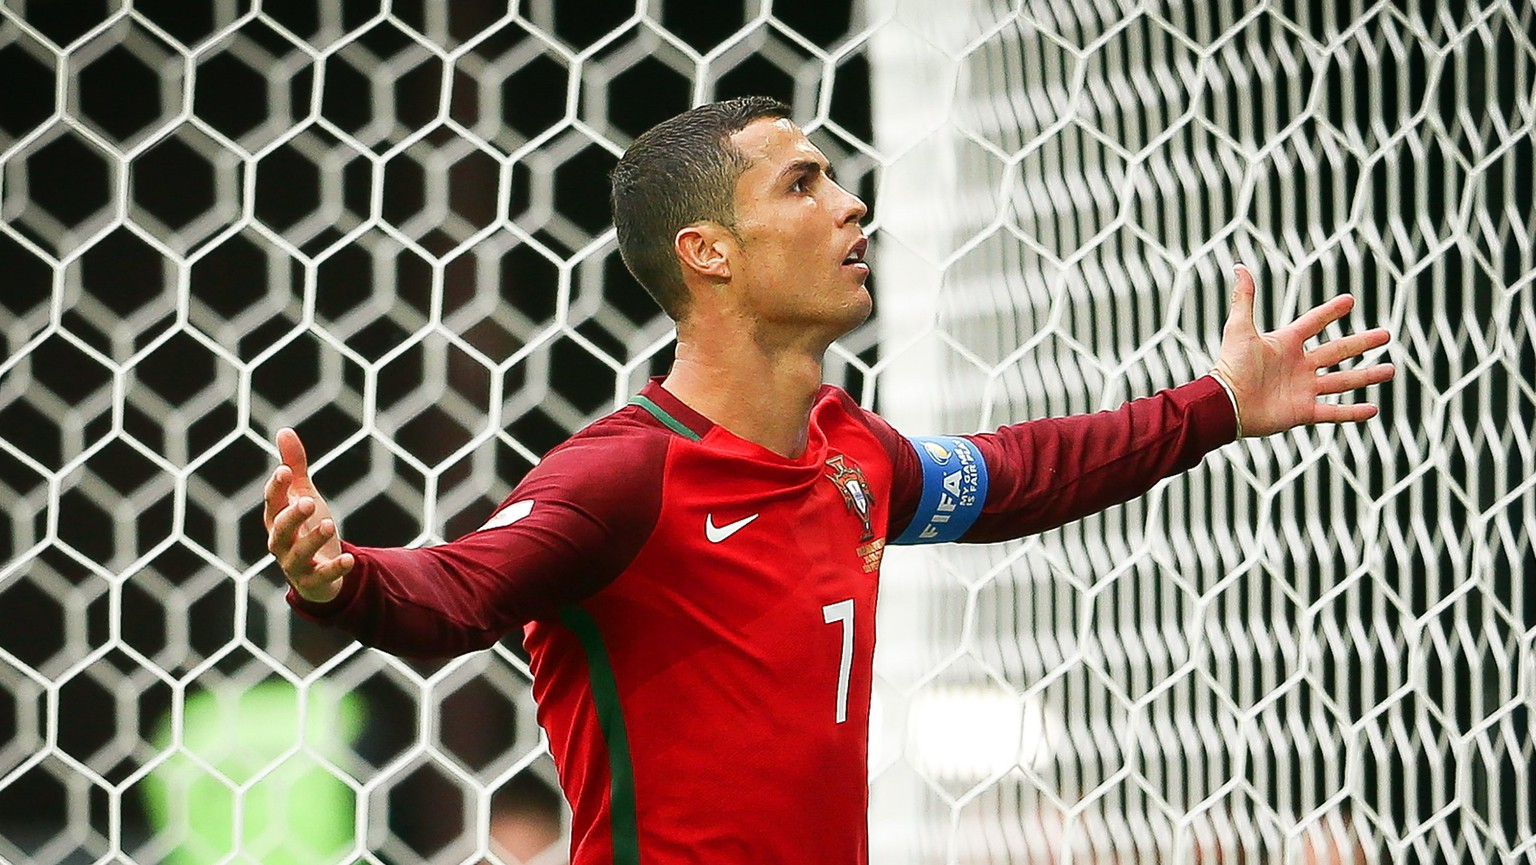 epa06047846 Portugal's Cristiano Ronaldo celebrates after scoring the 1-0 lead from the penalty spot during the FIFA Confederations Cup 2017 group A soccer match between New Zealand and Portugal at the Saint Petersburg stadium in St.Petersburg, Russia, 24 June 2017.  EPA/MARIO CRUZ